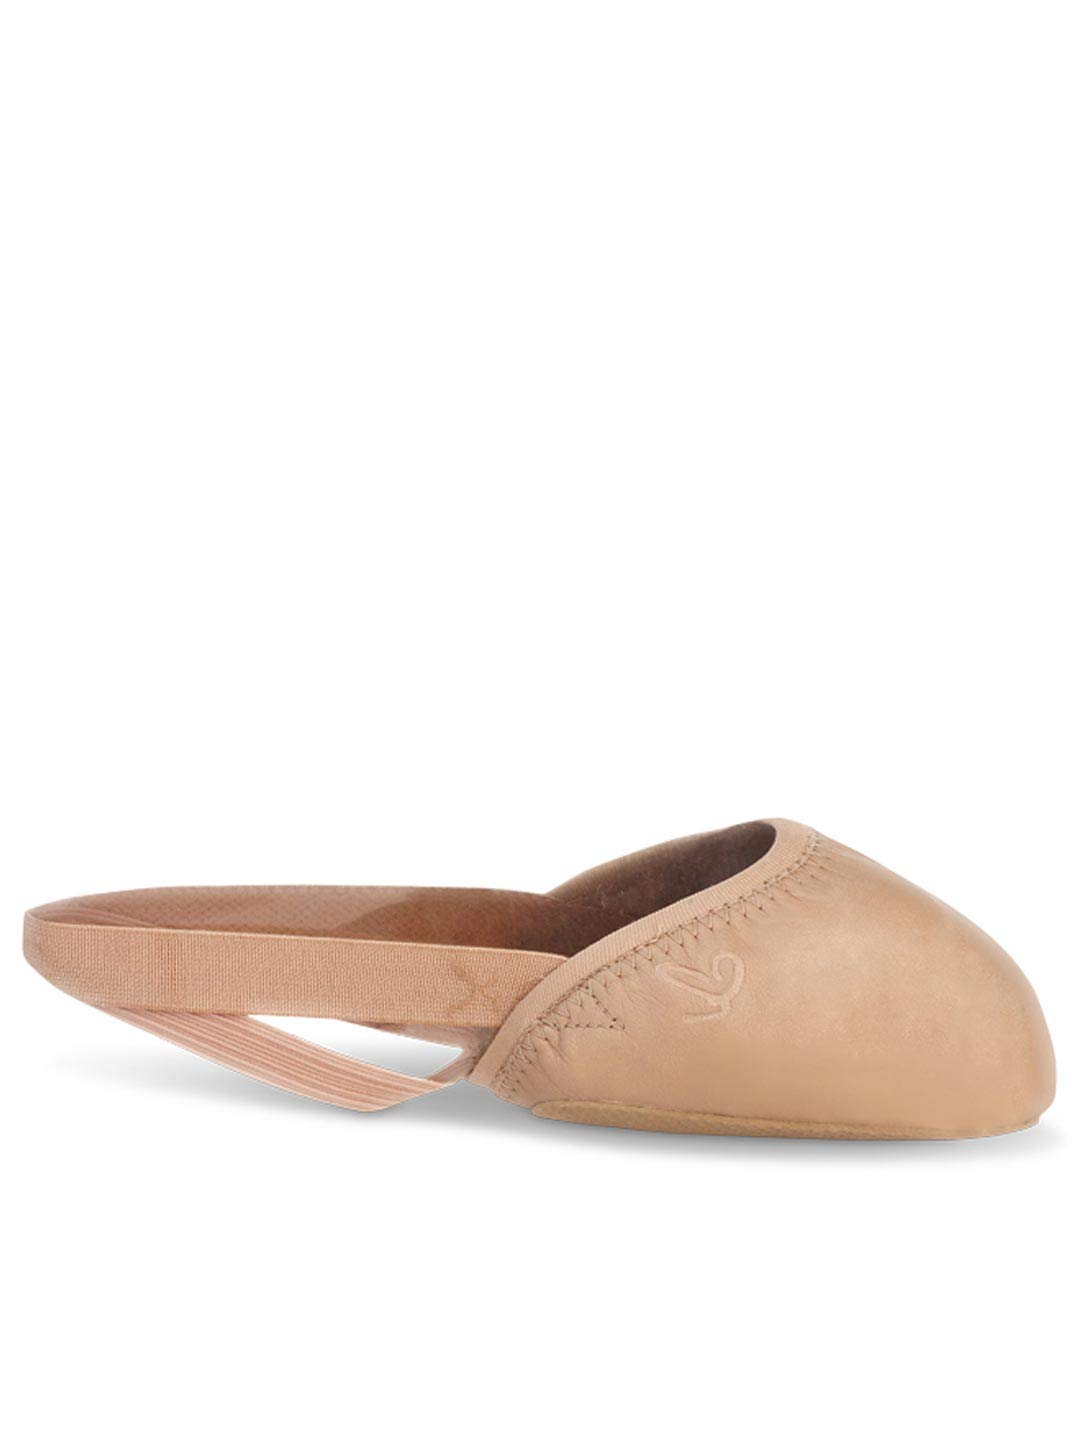 Capezio Turning Pointe 55 Women Dance Shoe, Nude, Medium/8-9.5 M US